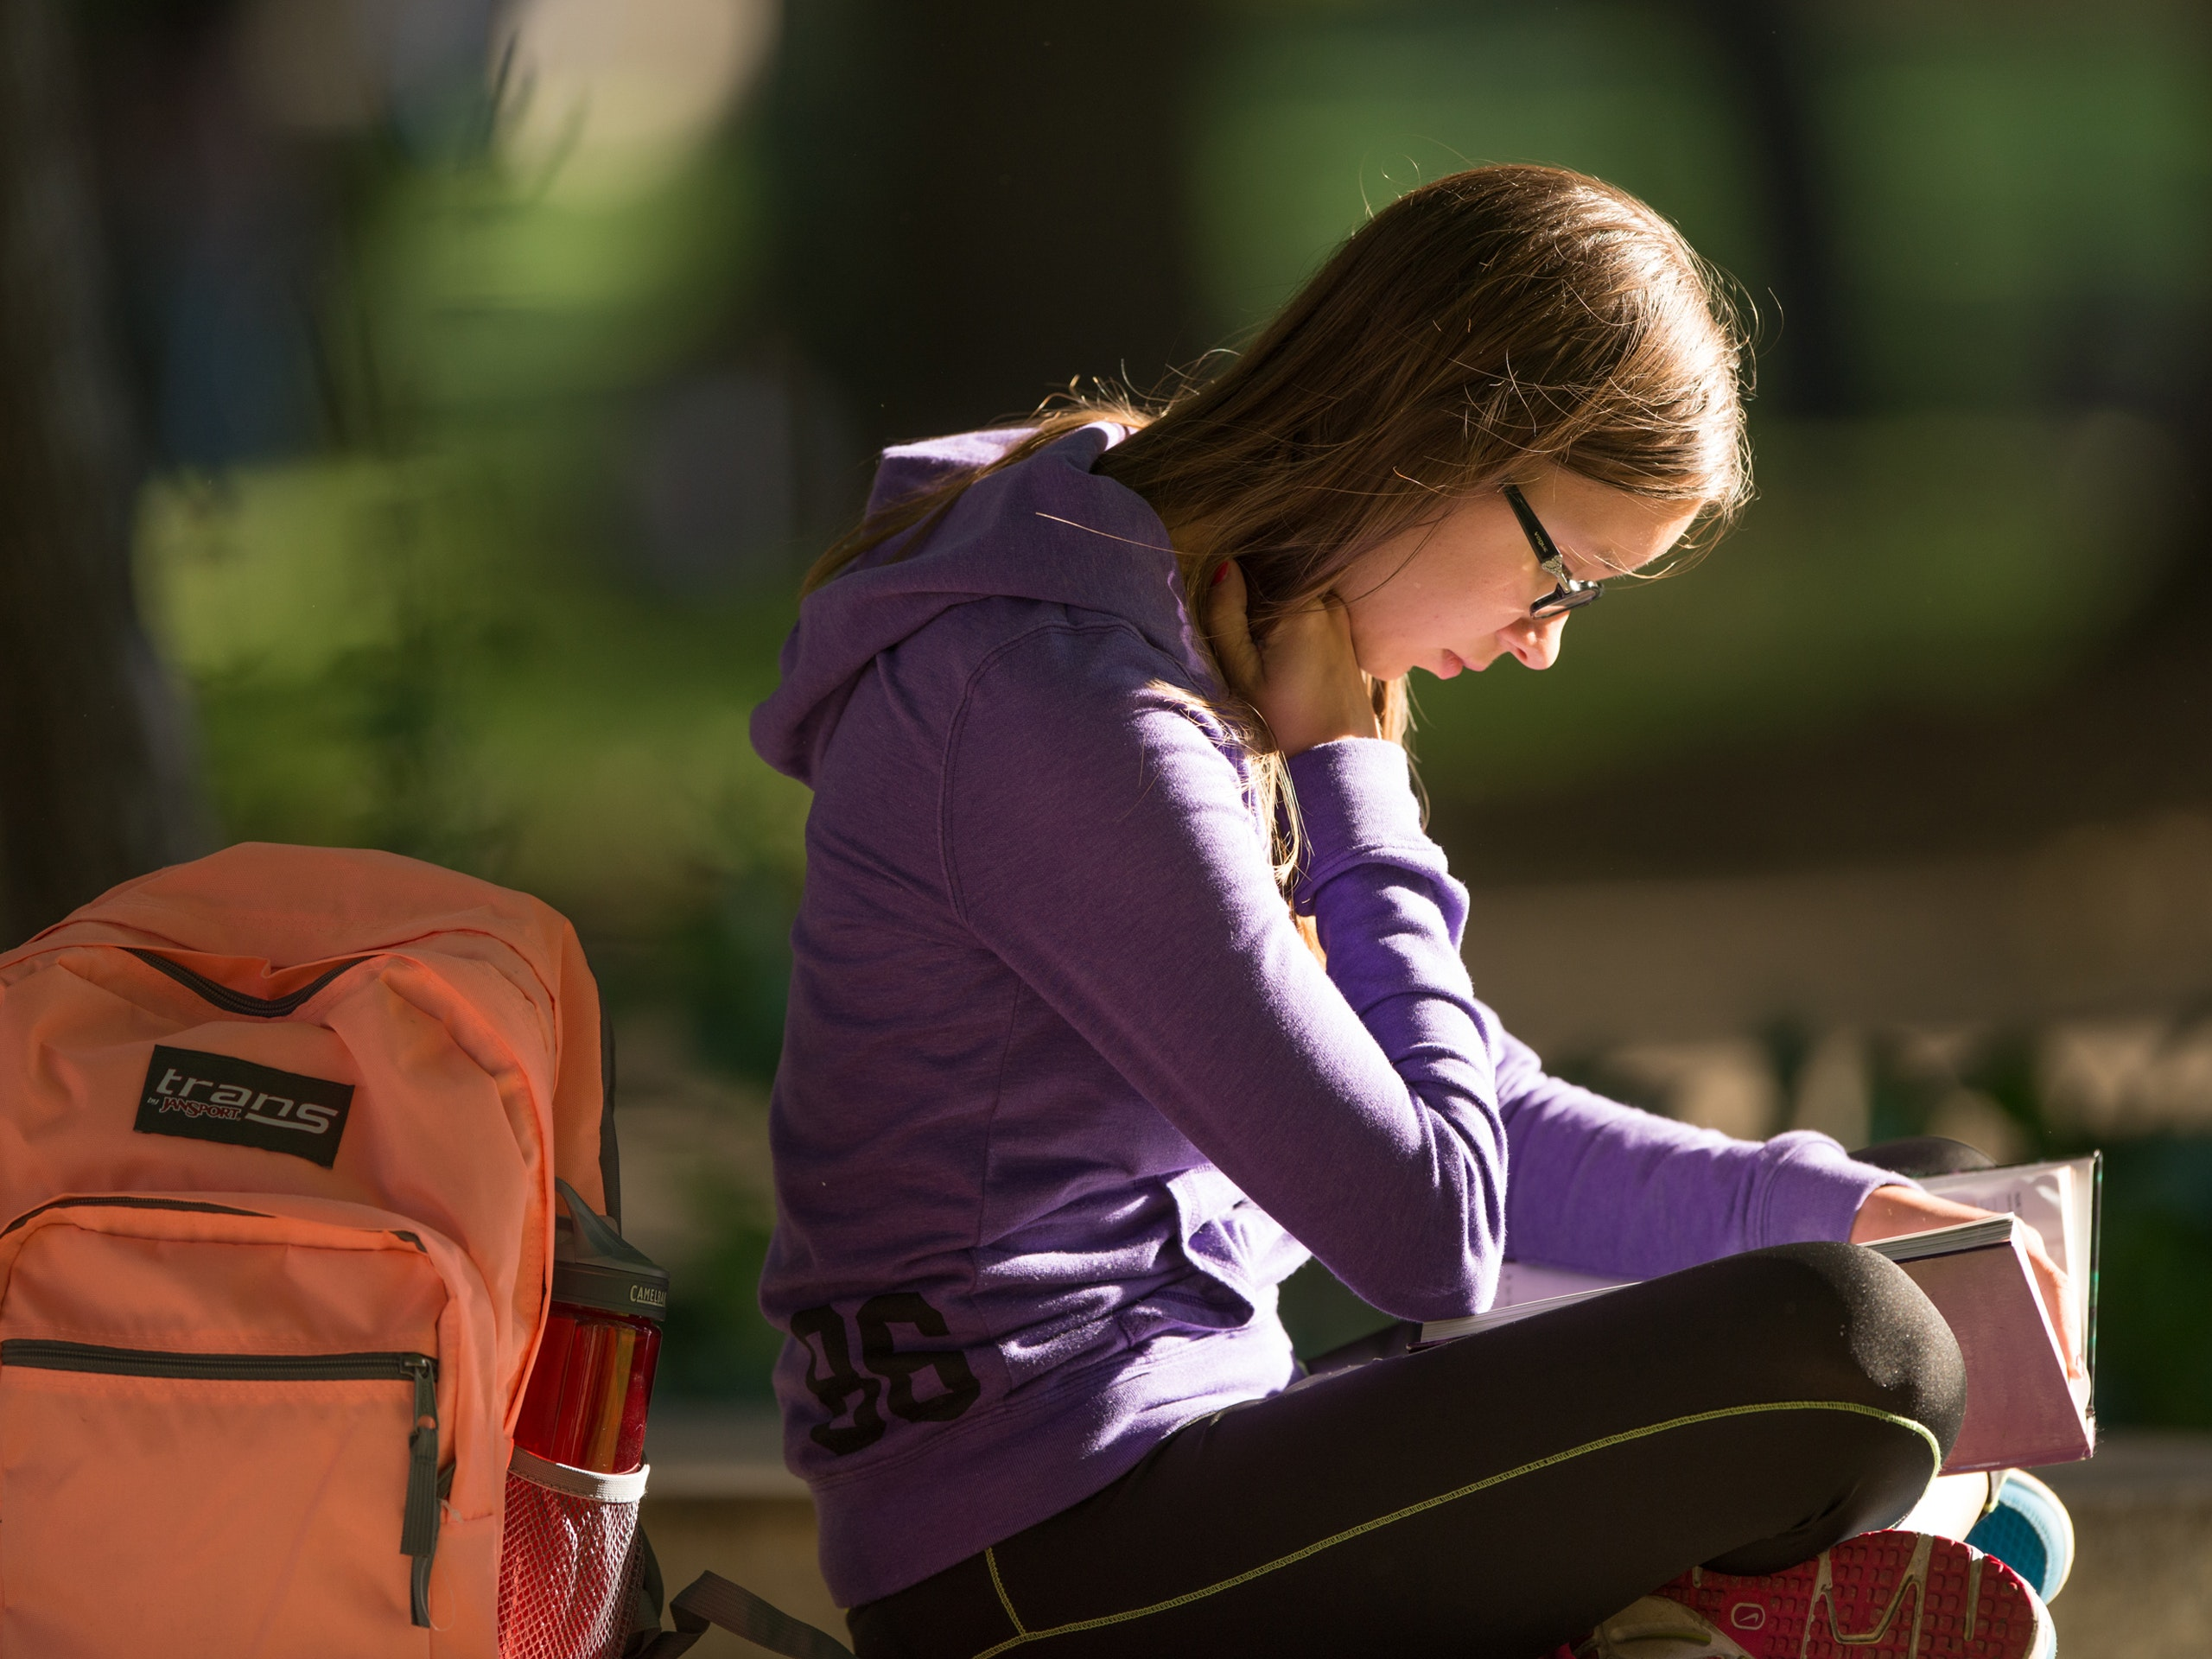 Student sitting outside reading a textbook.